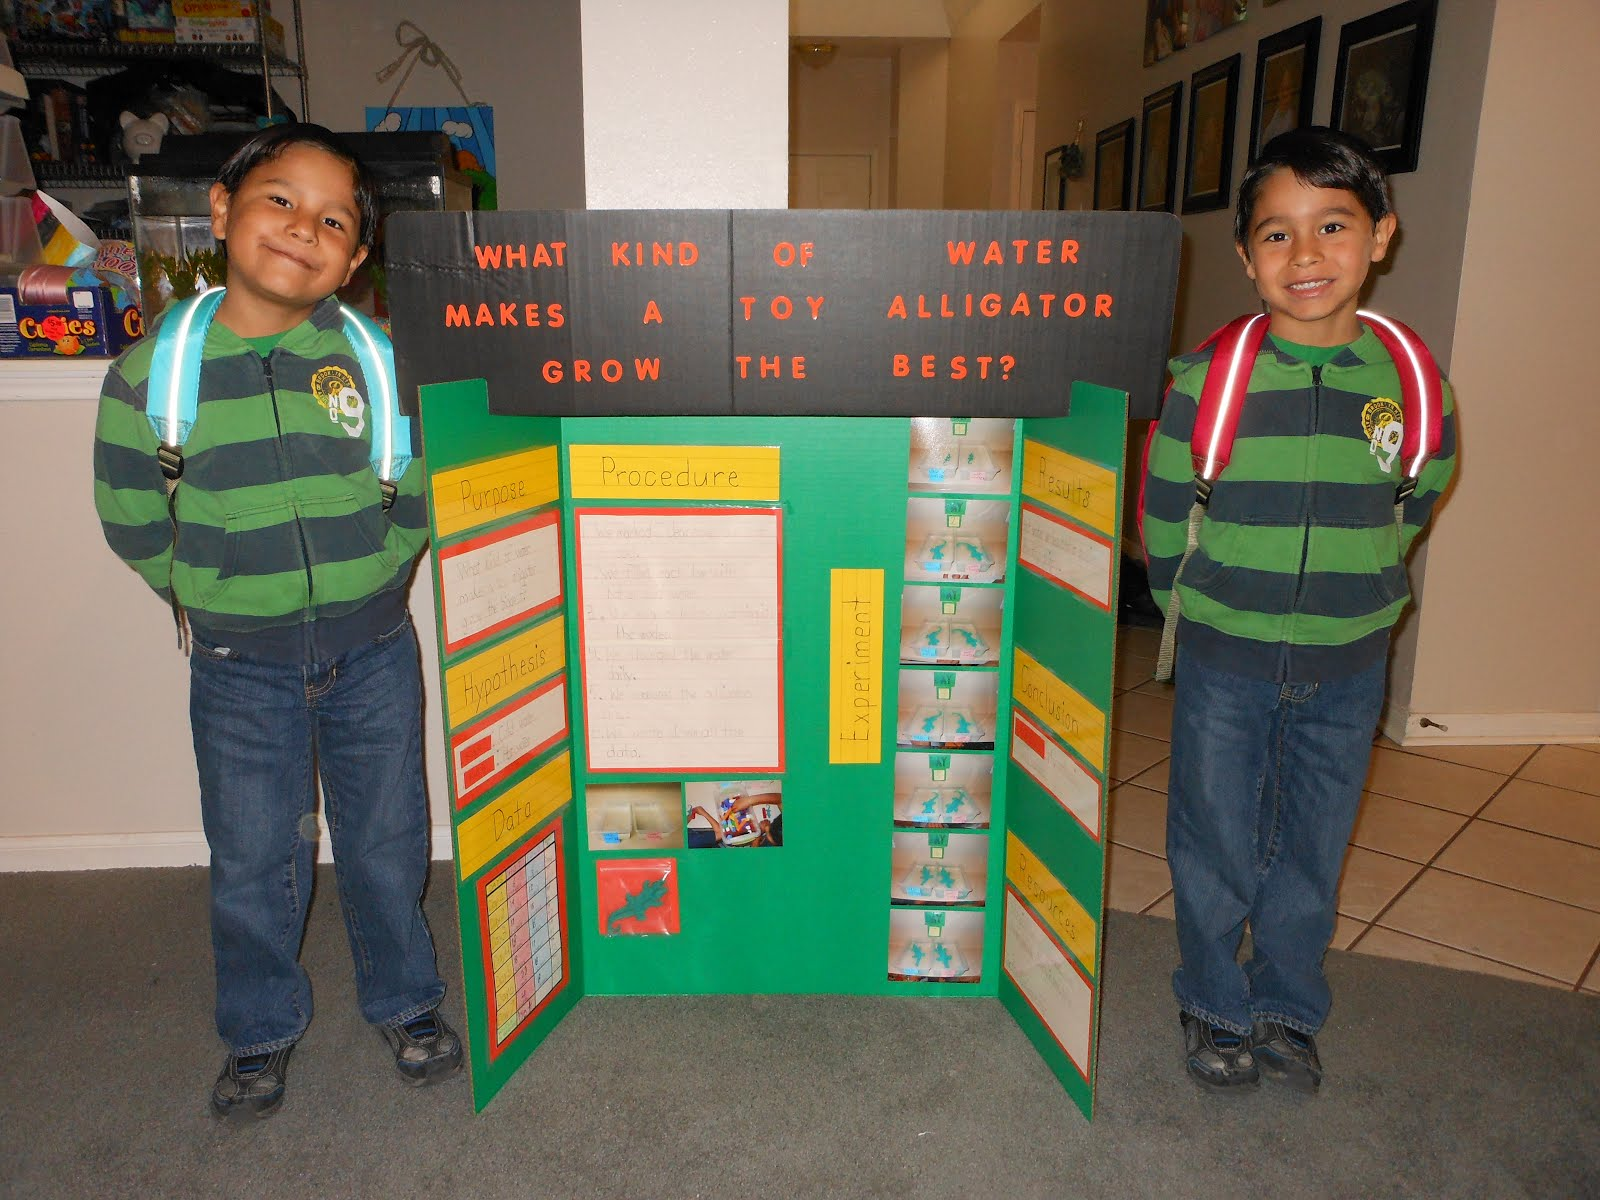 kindergarten science fair projects Find and save ideas about kindergarten science projects on pinterest | see more ideas about kindergarten science experiments, kindergarten science and preschool science.